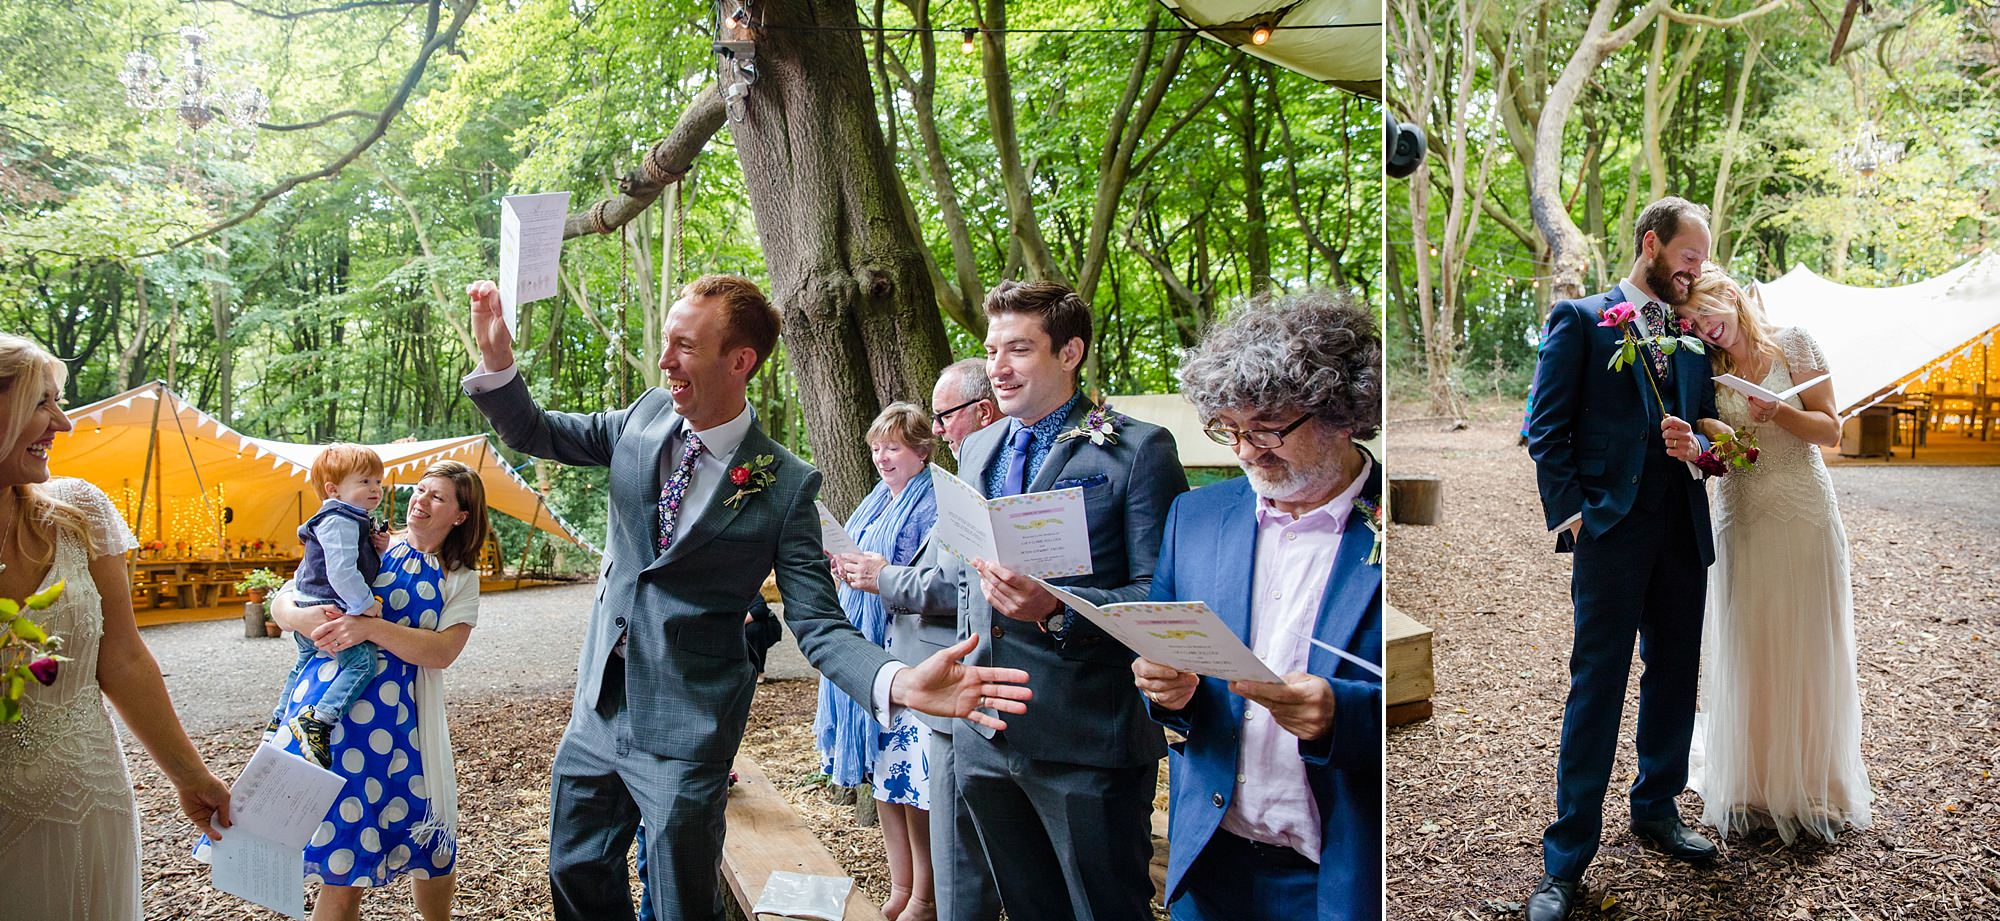 Woodland Weddings Tring guests sing songs